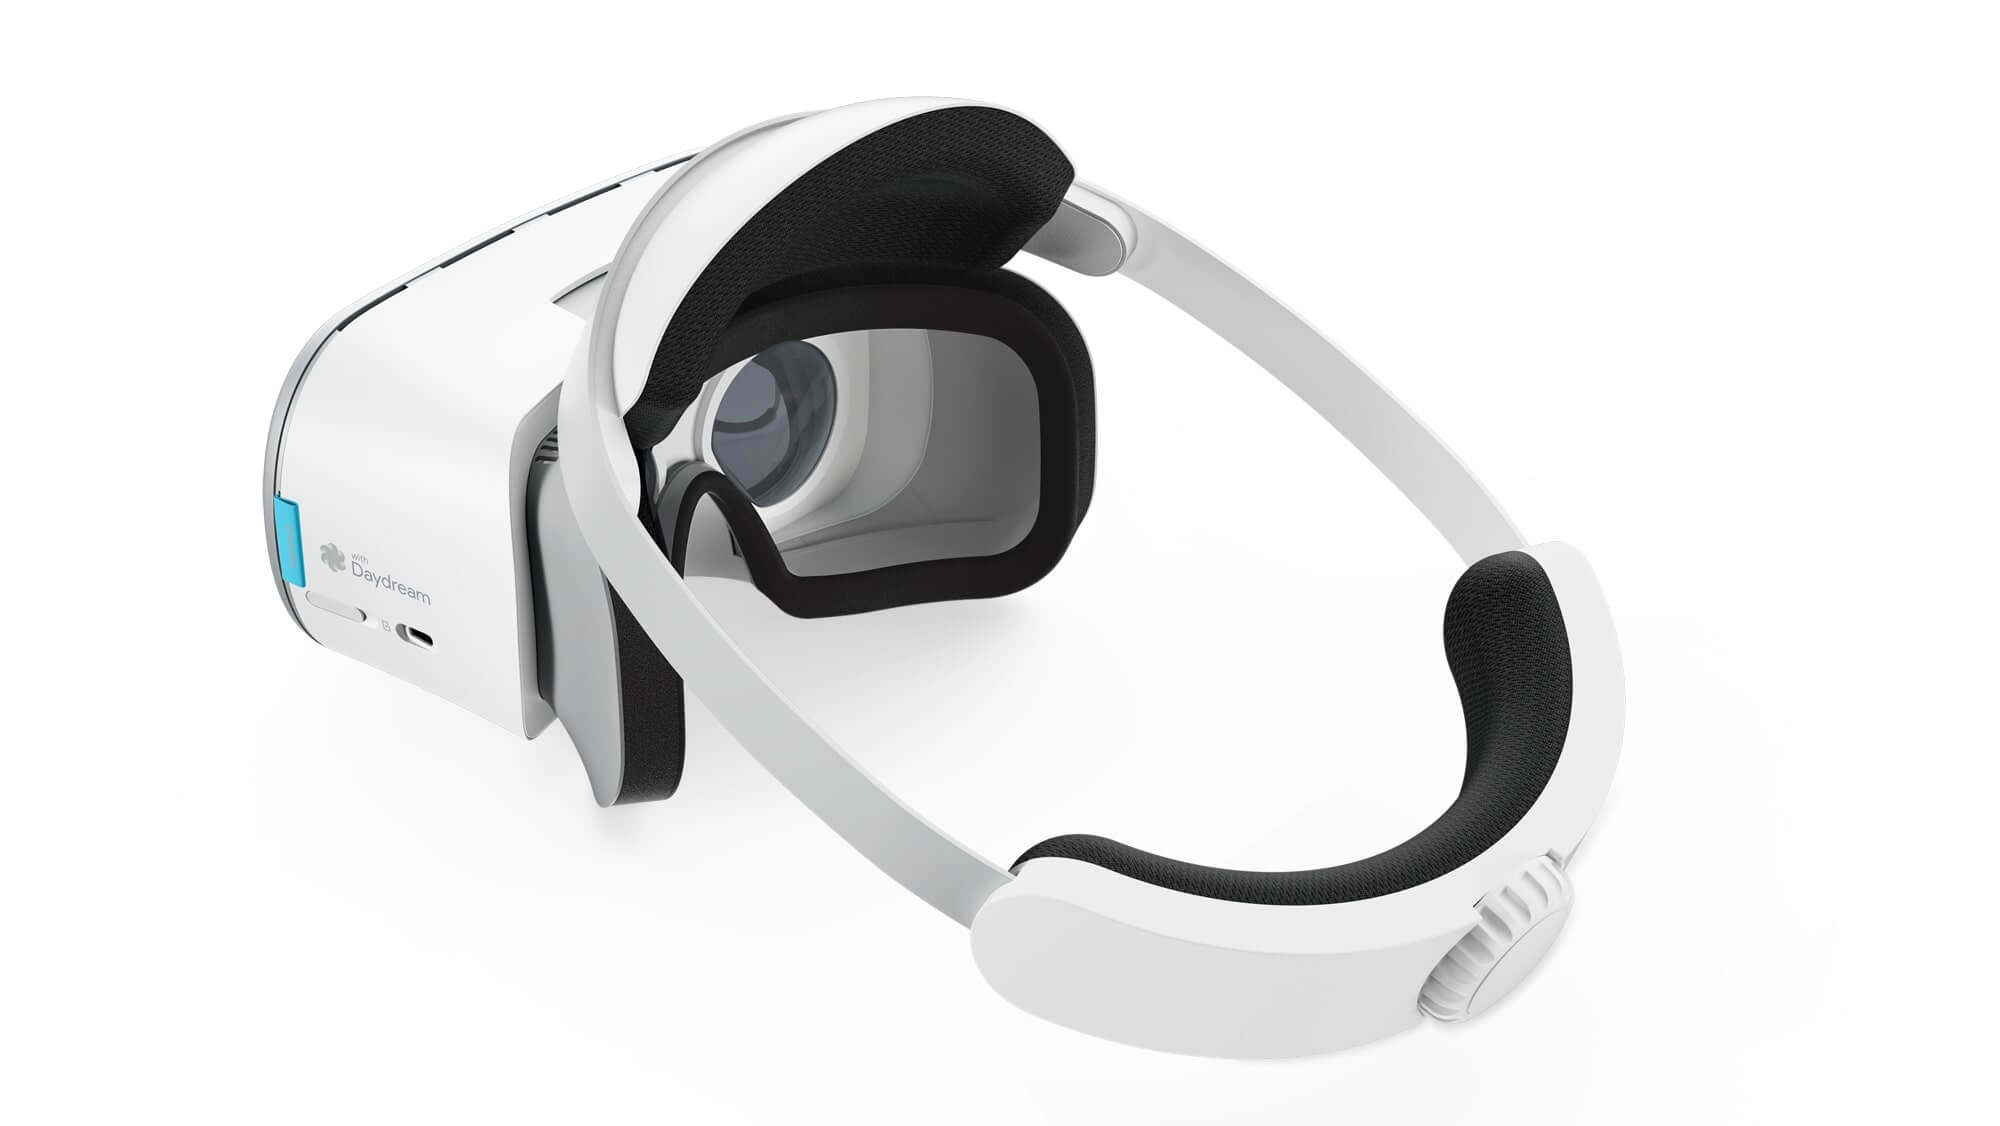 Lenovo is developing a new VR headset